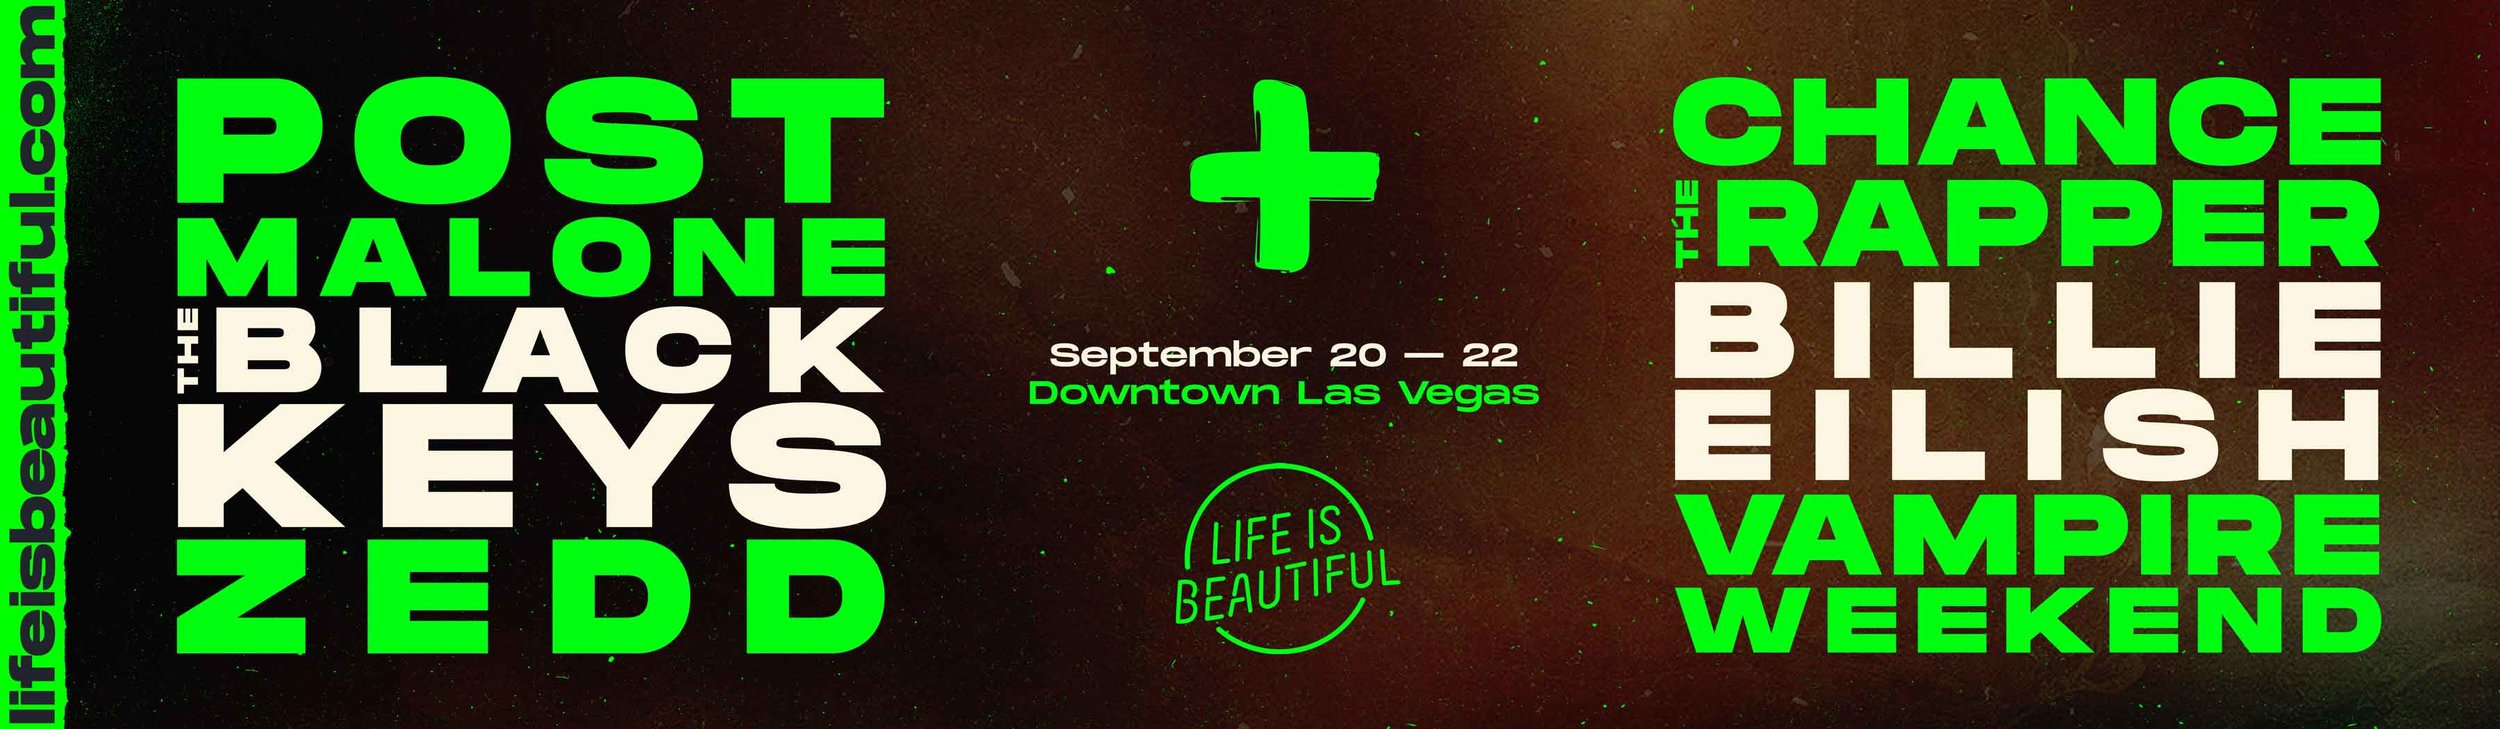 Billboard: Lineup Announcement for LIFE IS BEAUTIFUL 2019 festival.